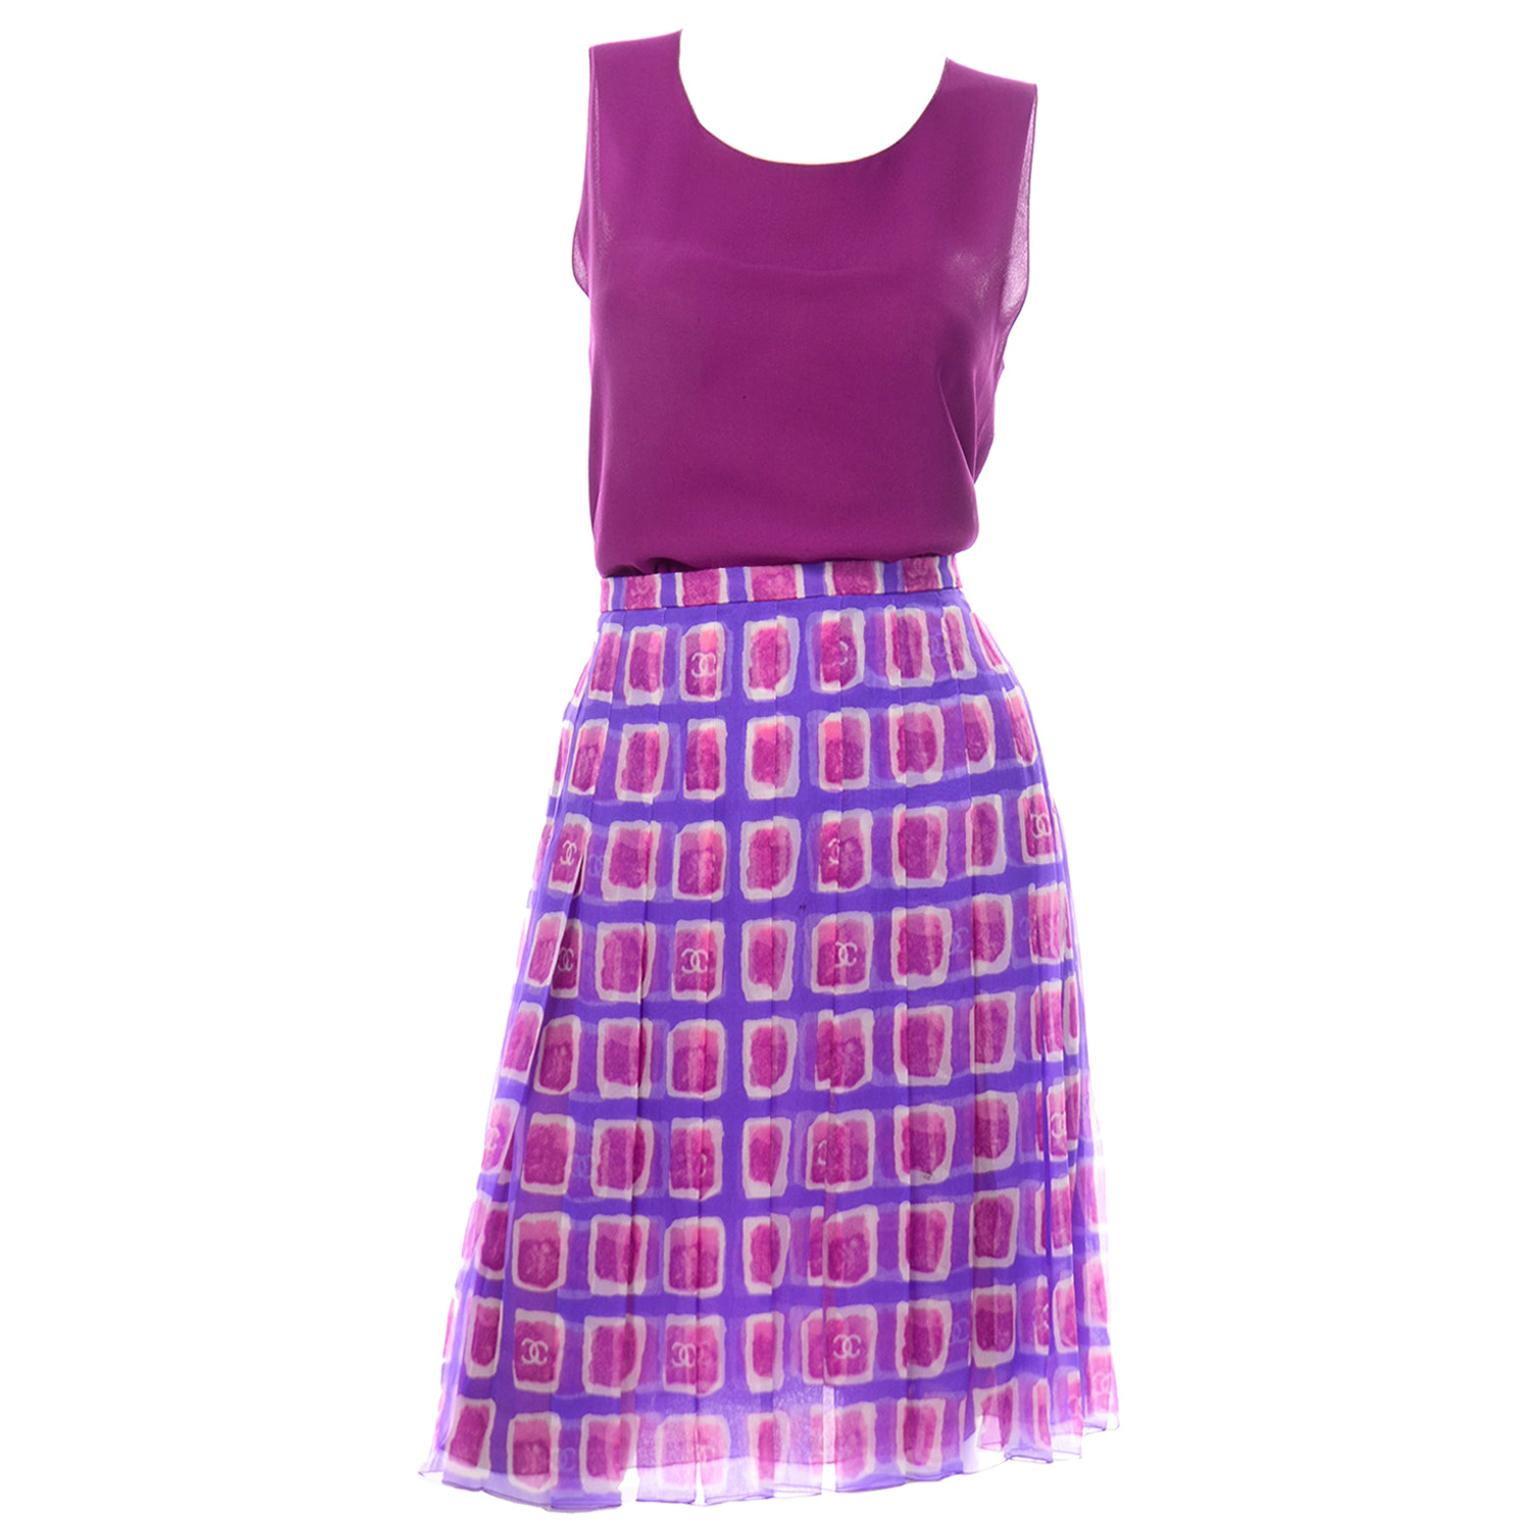 2001 Chanel CC Logo Monogram Purple & Raspberry Pink Silk Skirt W Sleeveless Top